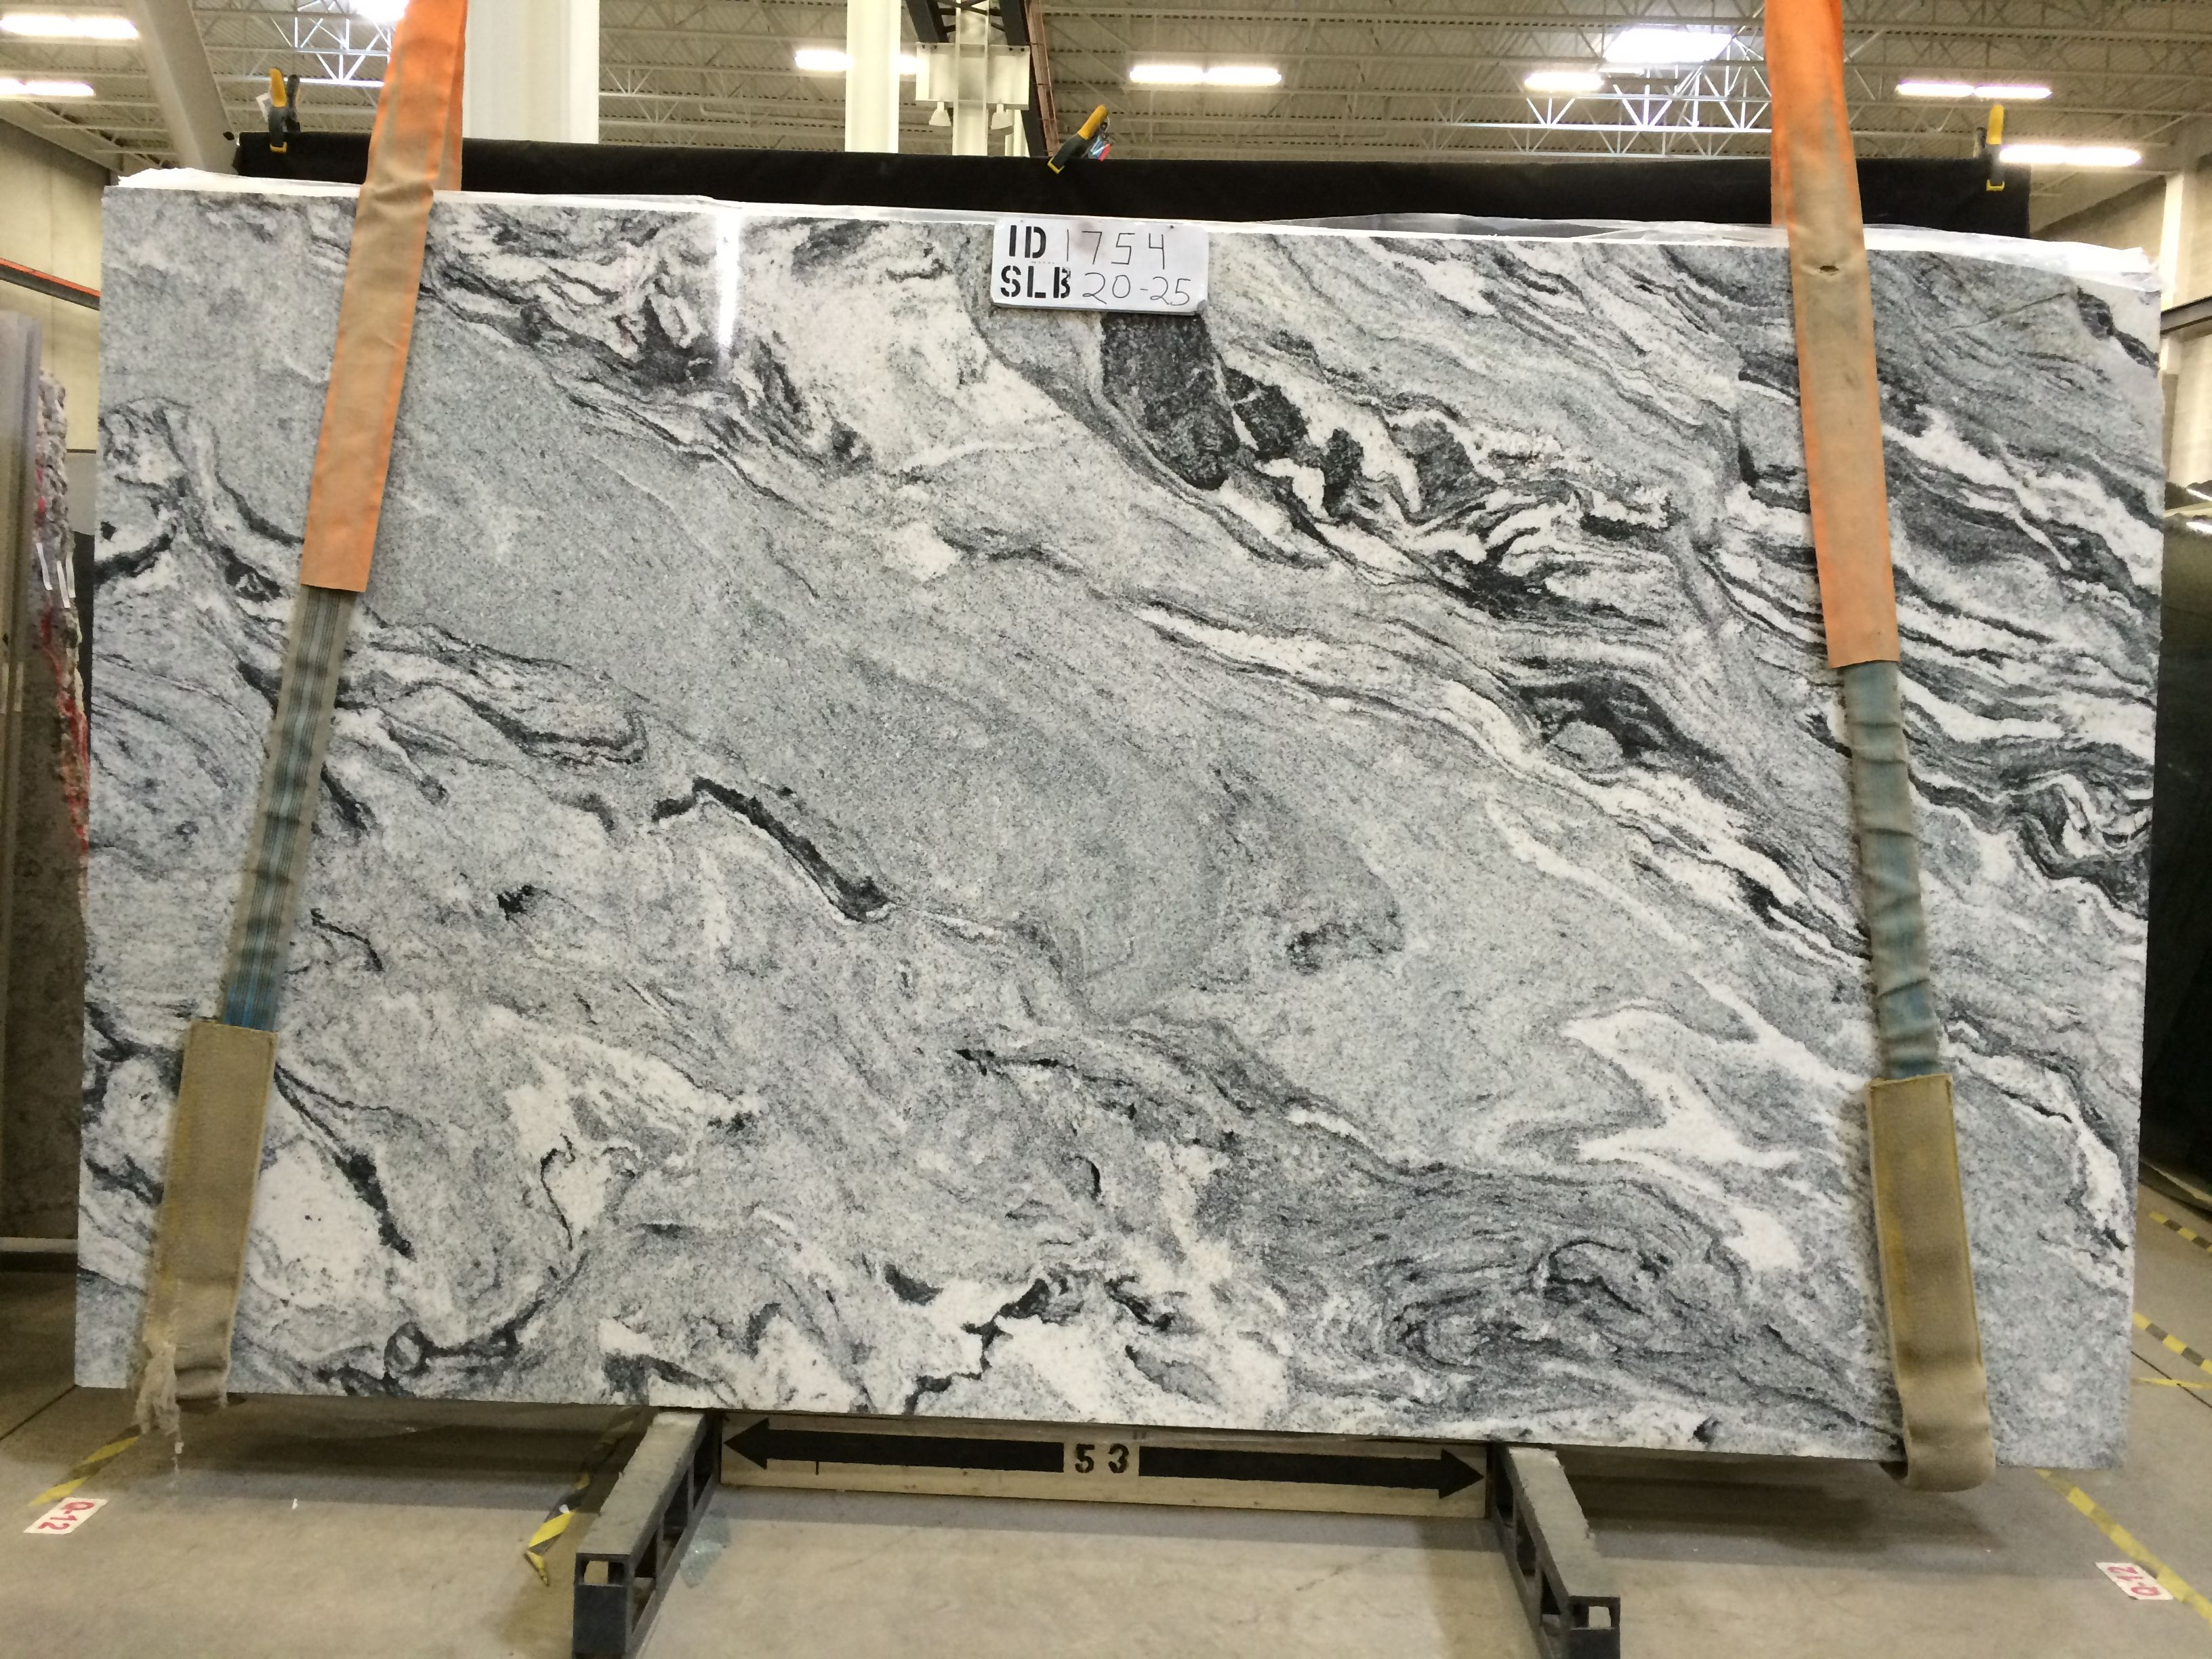 Marble Kitchen Countertops For Sale Part - 25: Exotic Granite Slabs For Sale In Canada - Hilltop Granites